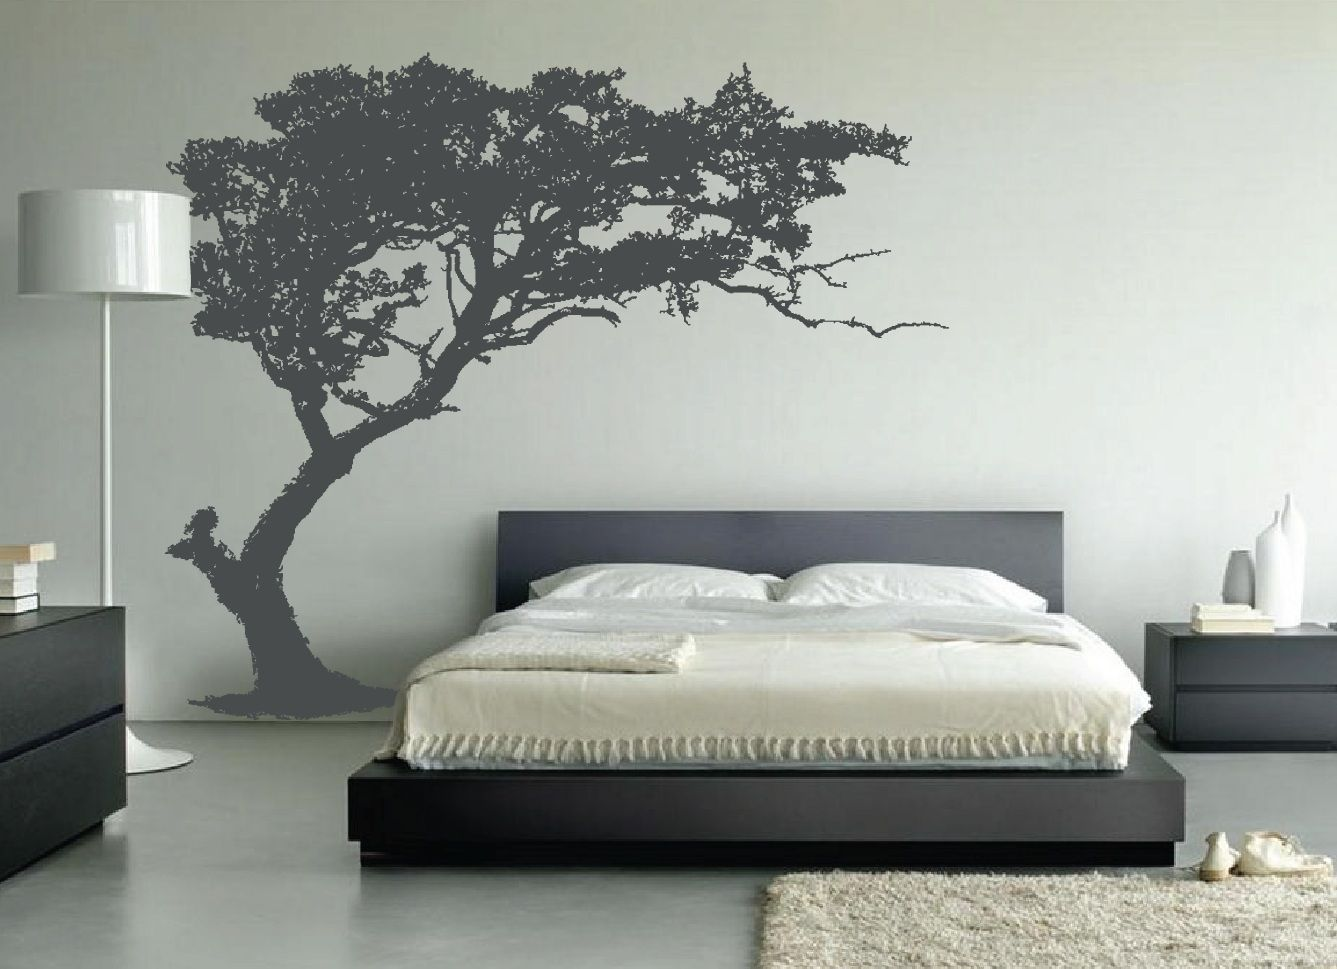 Large Wall Tree Decal Forest Decor Vinyl Sticker Highly Detailed Removable Nursery 1131 Wall Decor Bedroom Girl Bedroom Walls Home Decor Bedroom